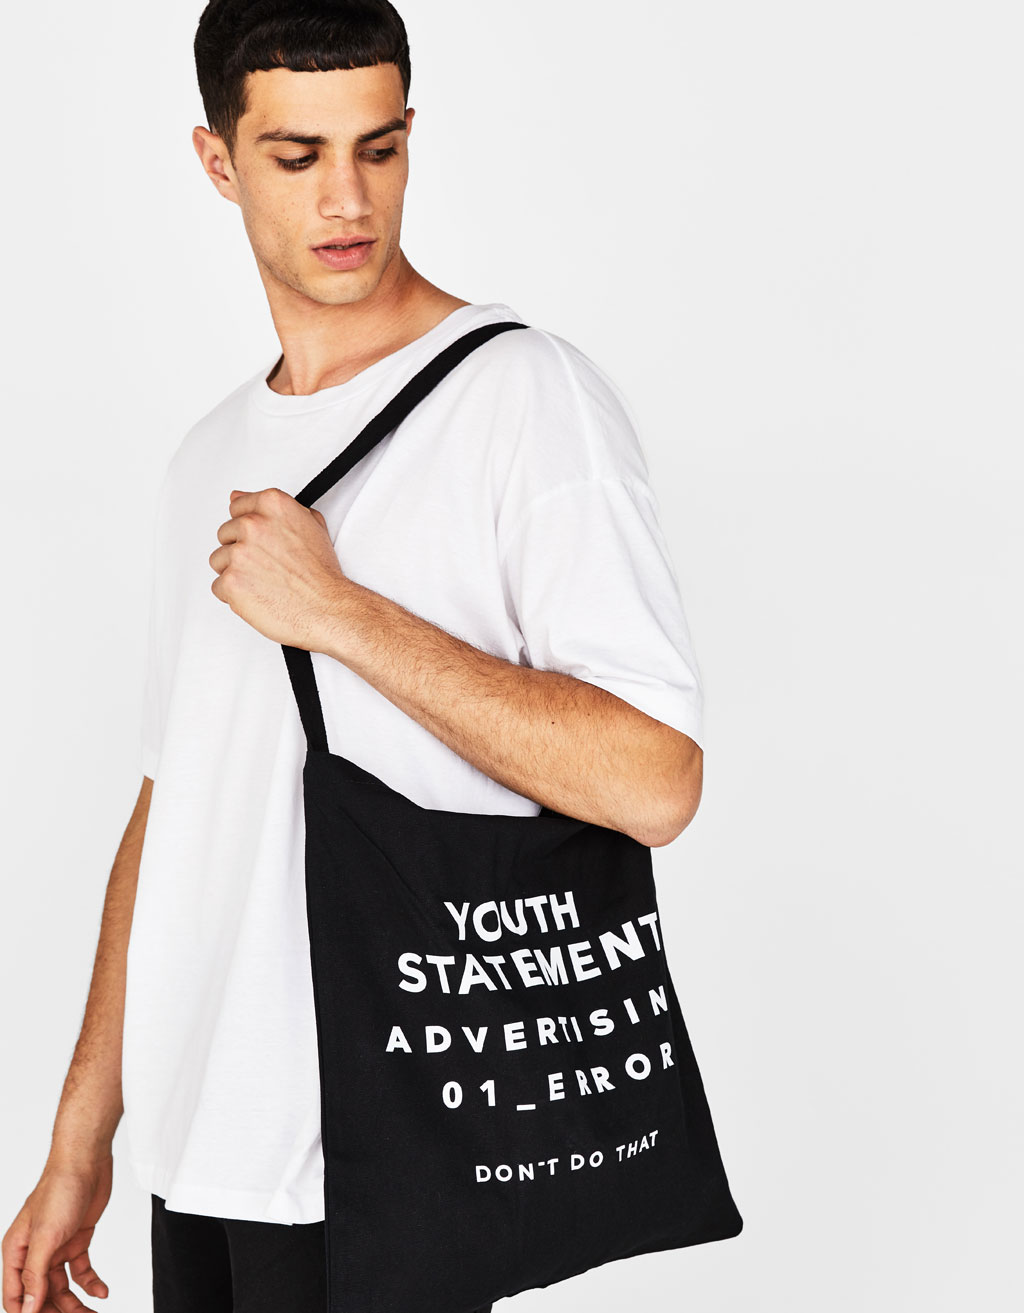 Shopper bag con texto